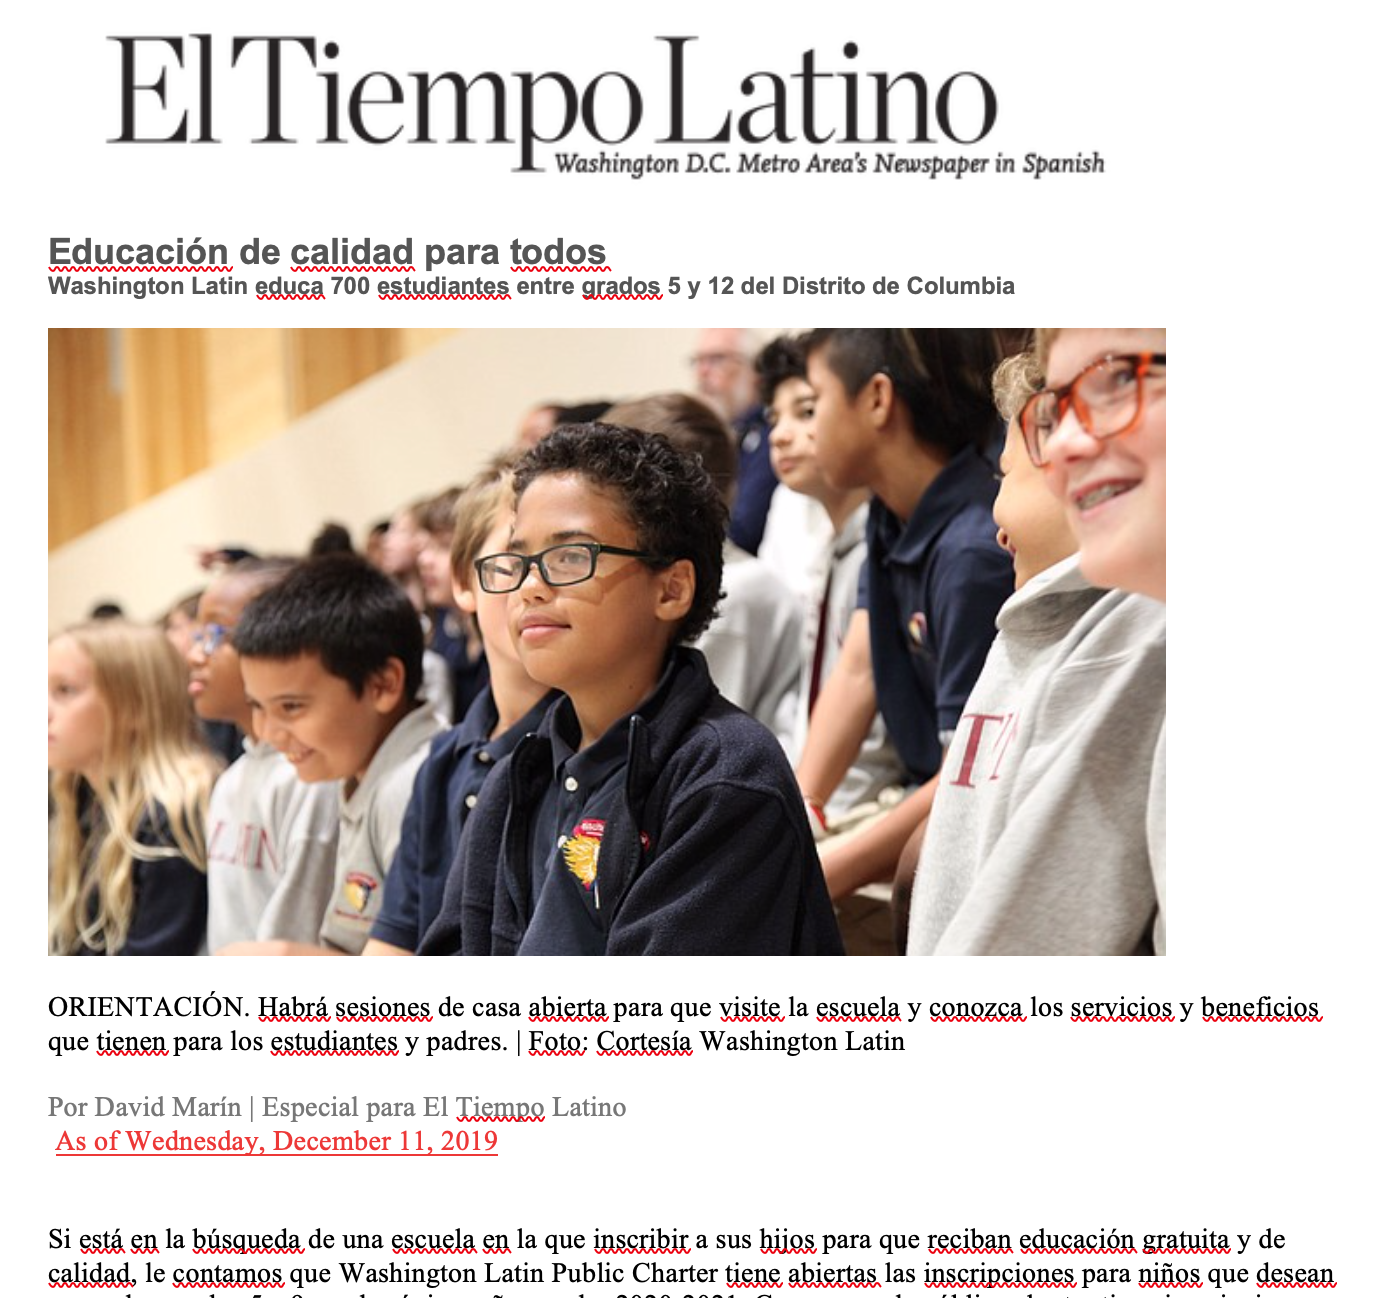 Latin featured in El Tiempo Latino